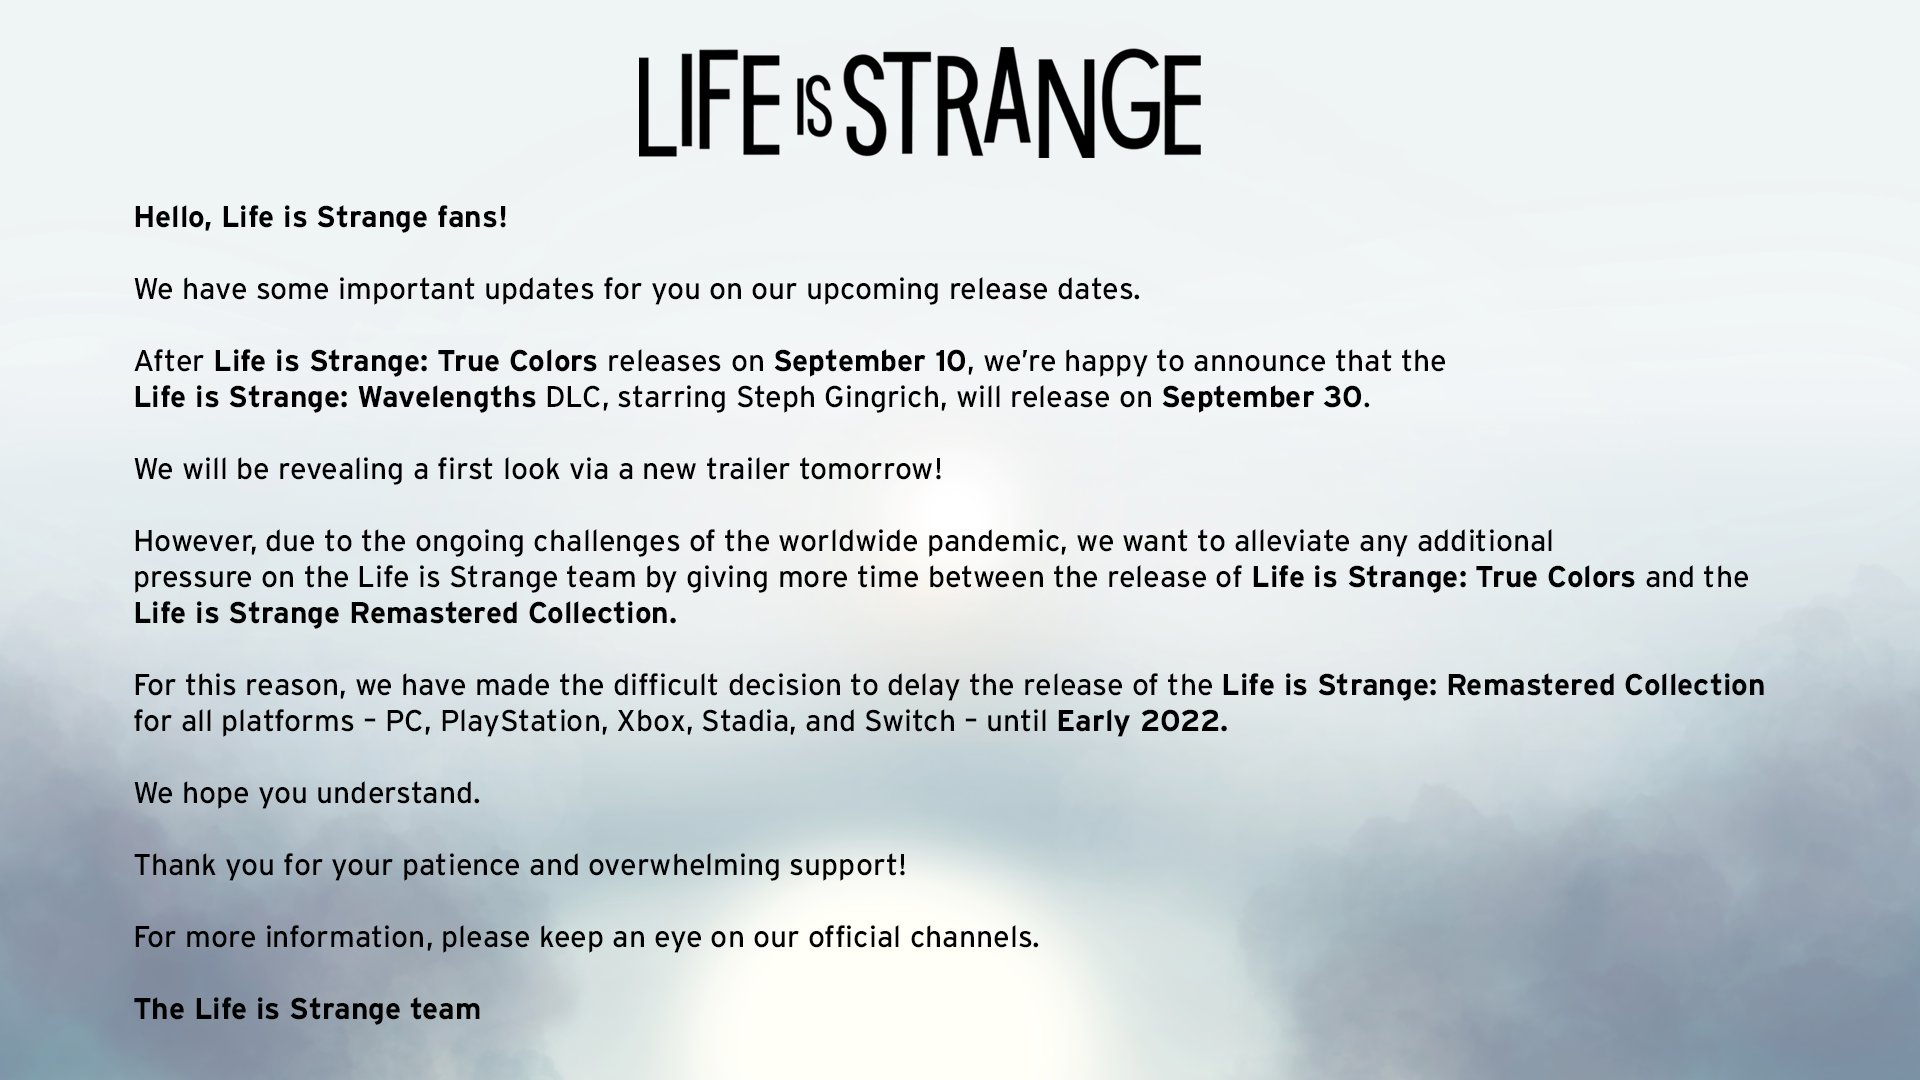 Hello, Life is Strange fans!  We have some important updates for you on our upcoming release dates.  After Life is Strange: True Colors releases on September 10, we're happy to announce that the Life is Strange: Wavelengths DLC, starring Steph Gingrich, will release on September 30. We will be revealing a first look via a new trailer tomorrow.  However, due to the ongoing challenges of the worldwide pandemic, we want to alleviate any additional pressure on the Life is Strange team by giving more time between the release of Life is Strange: True Colors, and Life is Strange Remastered Collection.  For this reason, we have made the difficult decision to delay the release of the Life is Strange: Remastered Collection for all platforms – PC, PlayStation, Xbox, Stadia, and Switch – until Early 2022. We hope you understand.  Thank you for your patience and overwhelming support!  For more information, please keep an eye on our official channels.  -The Life is Strange team